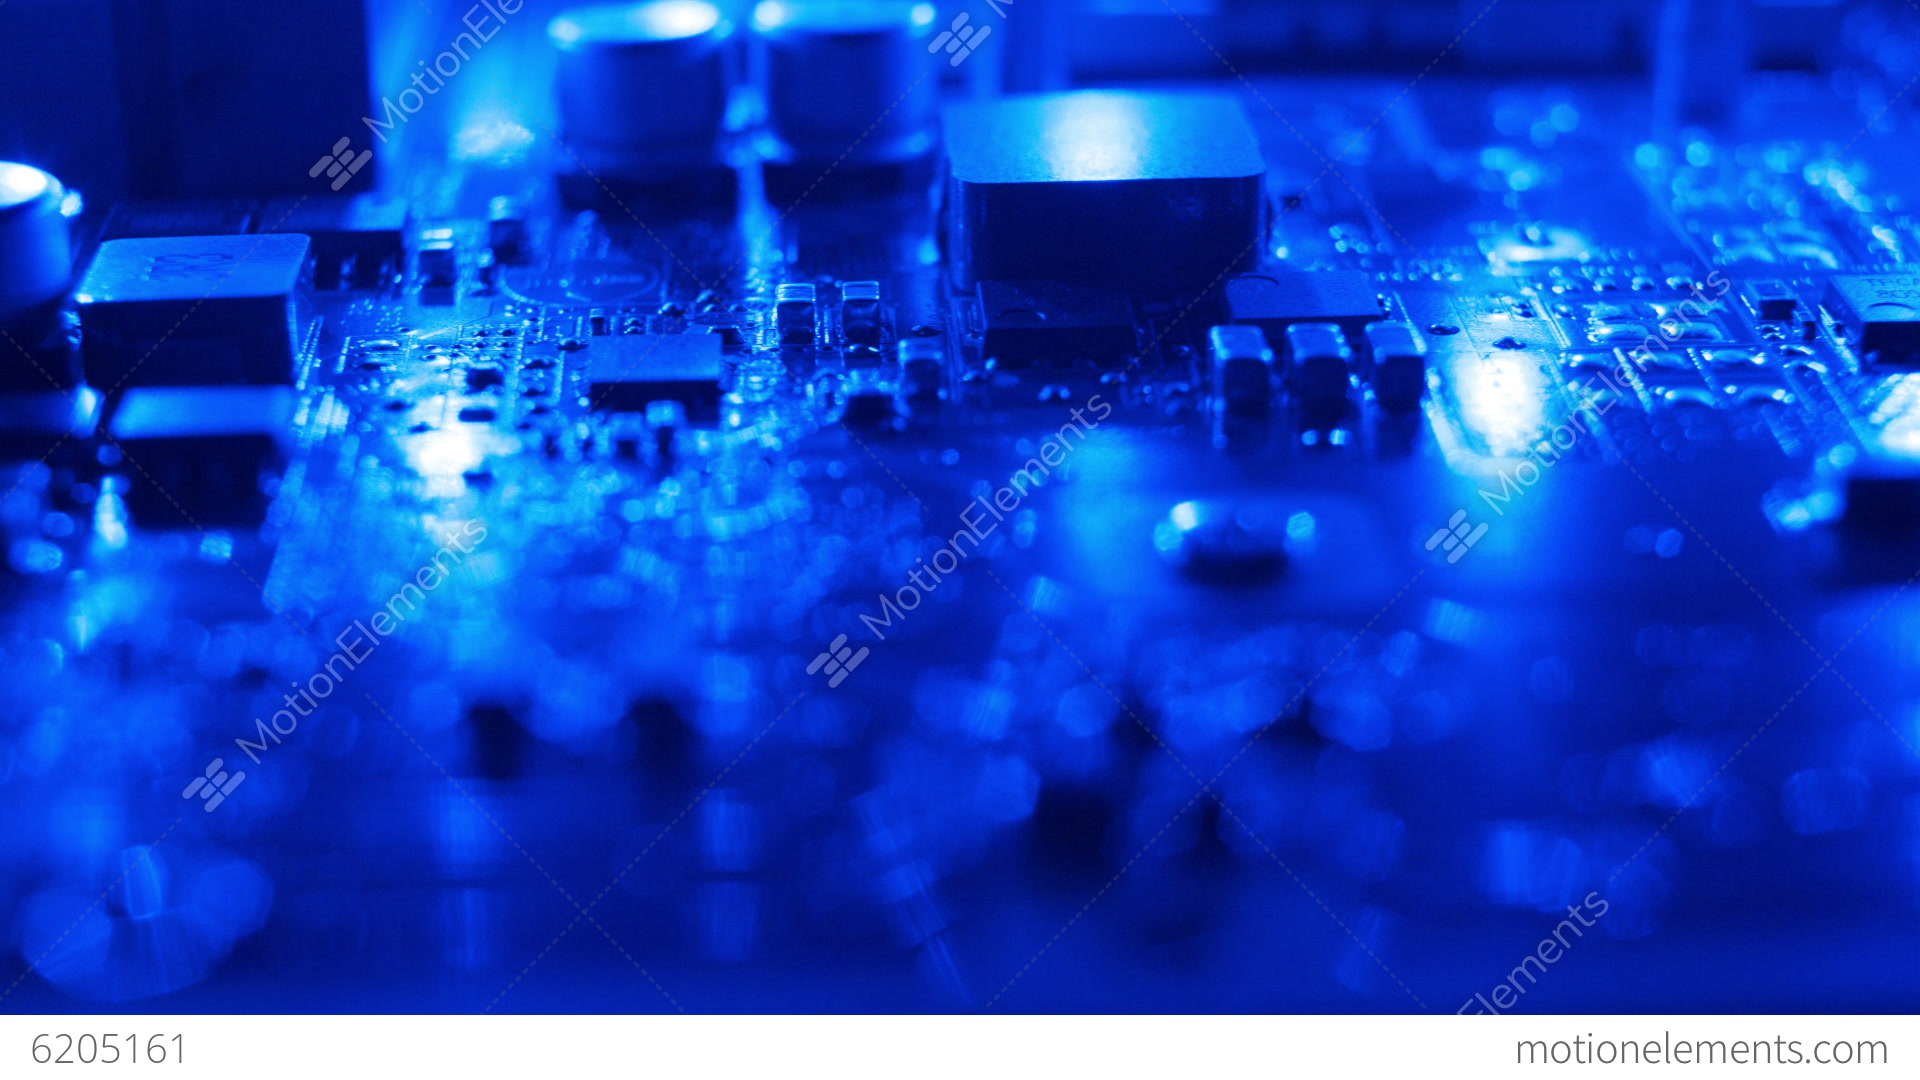 Dark Blue Electronic Background Stock video footage  6205161